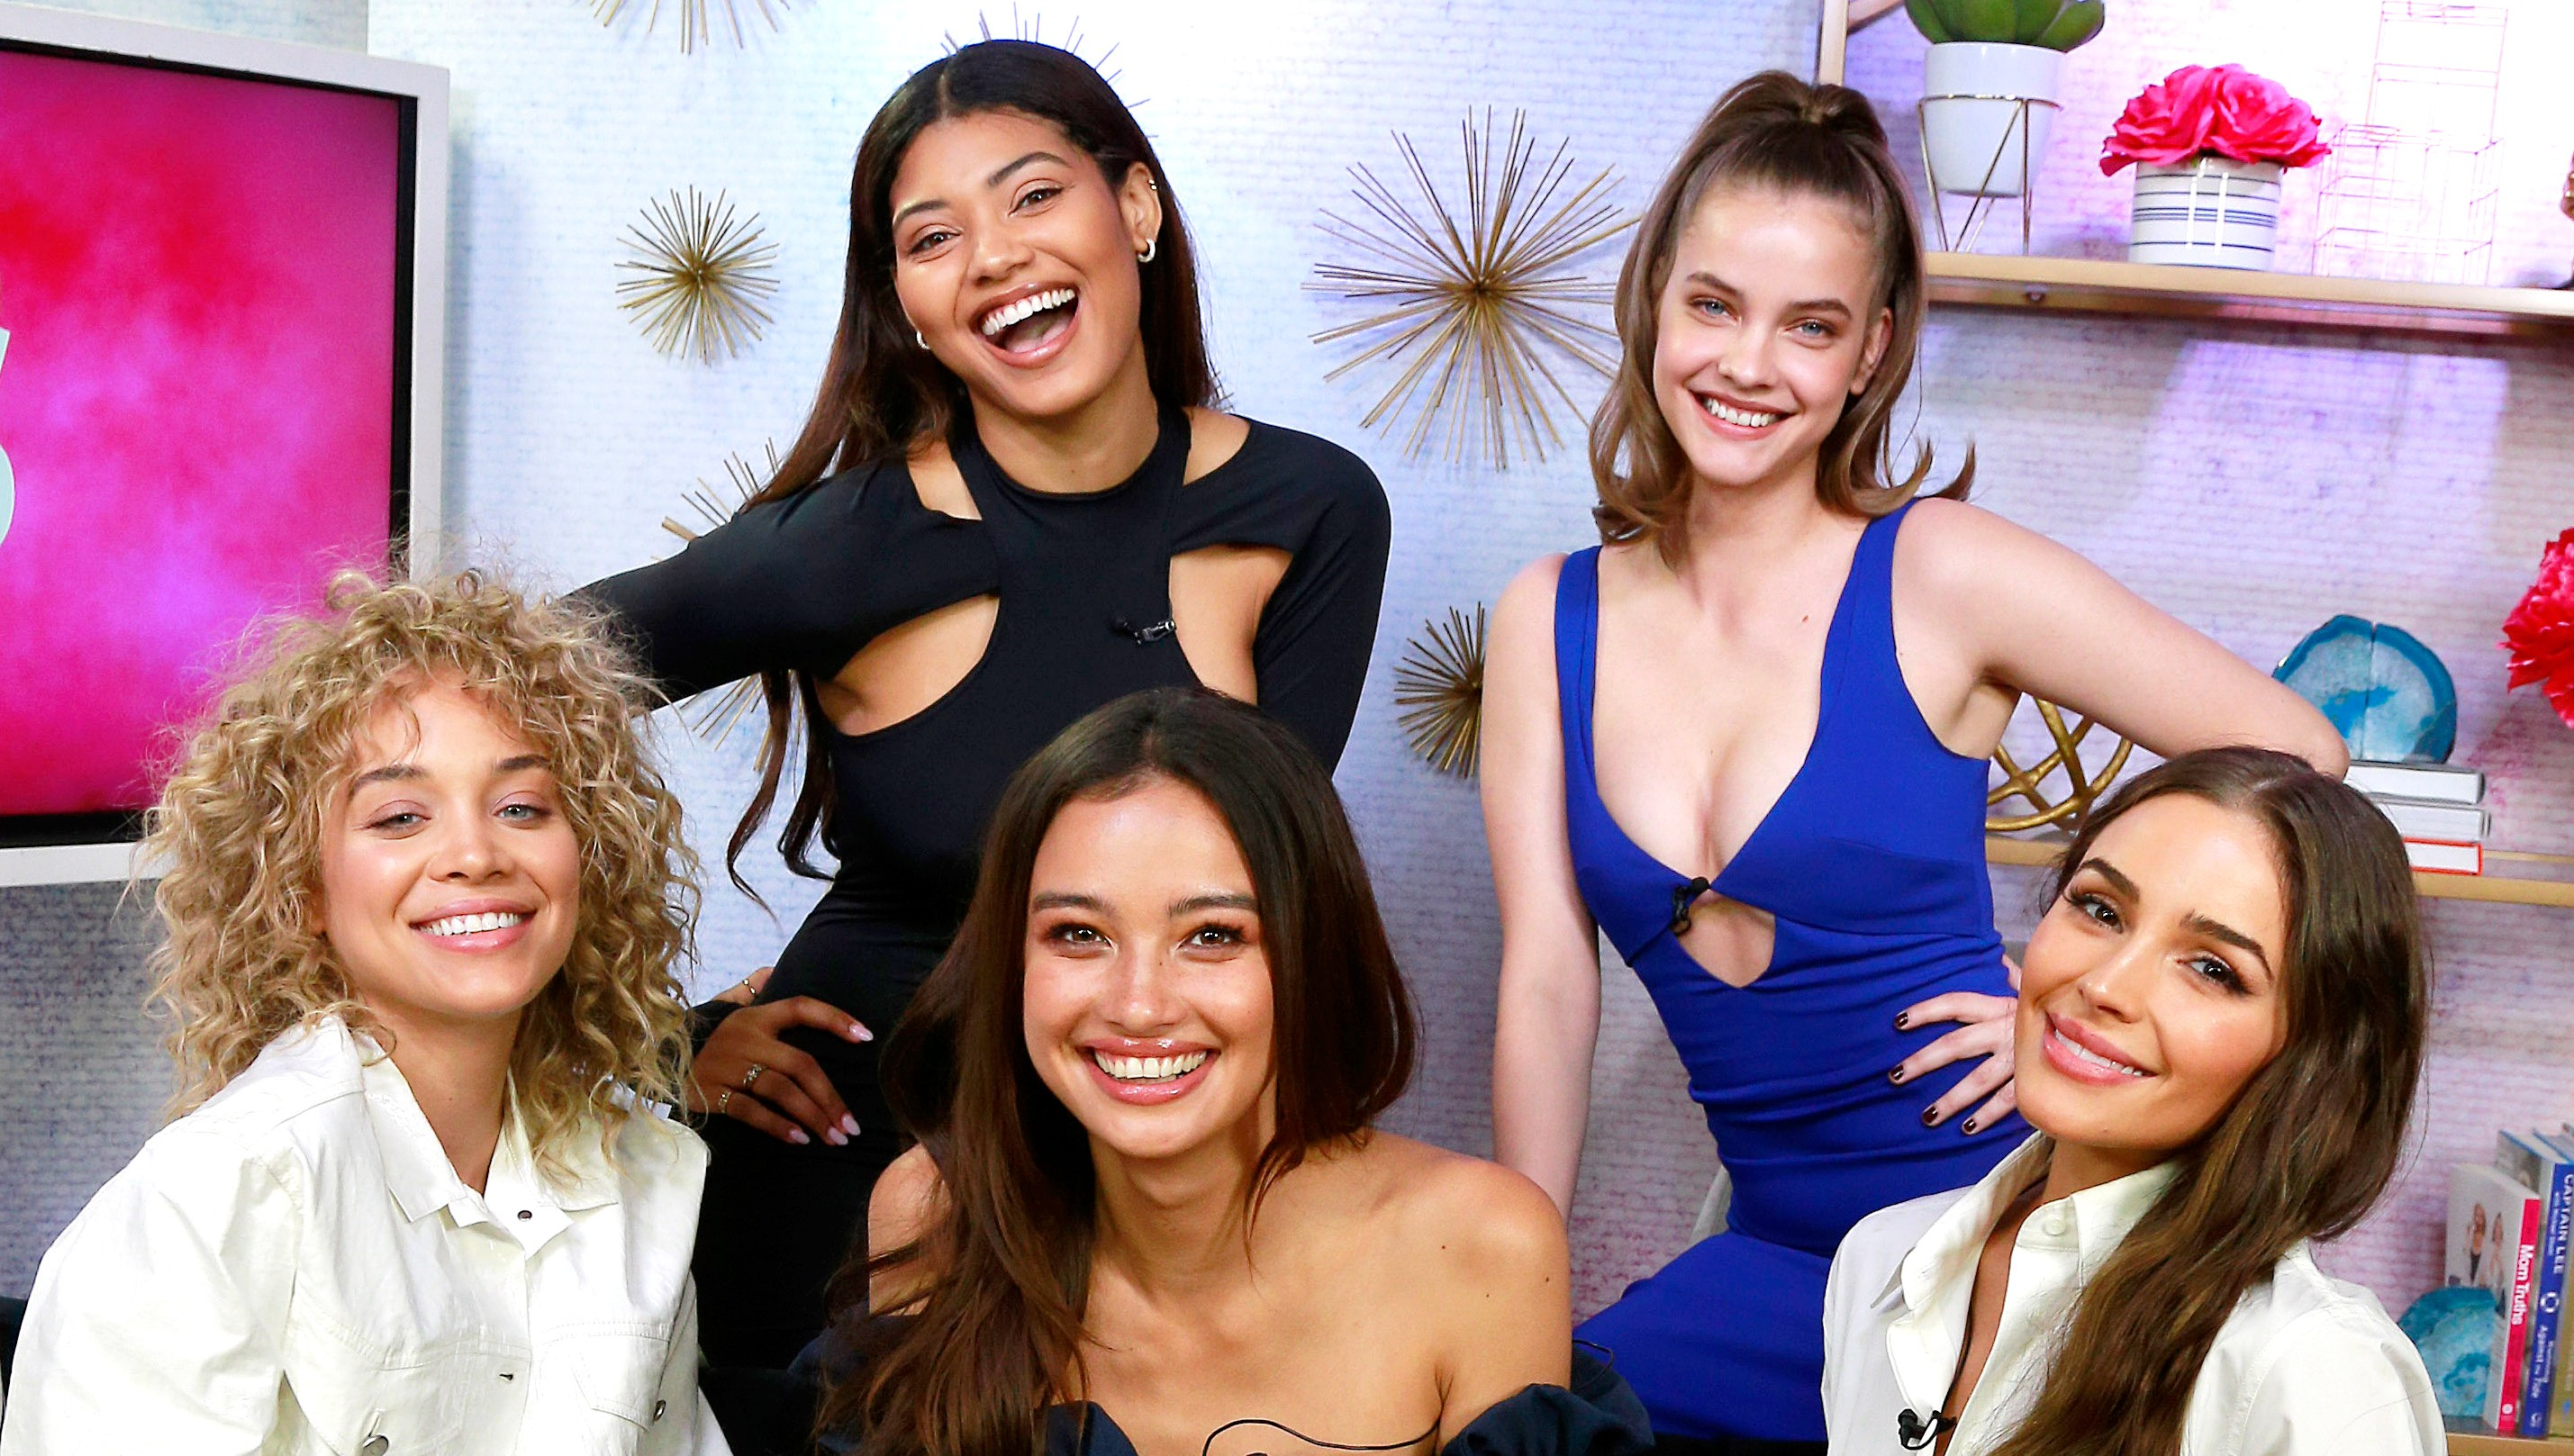 SI Swimsuit Models Reveal How They Prepped for Their Shoots